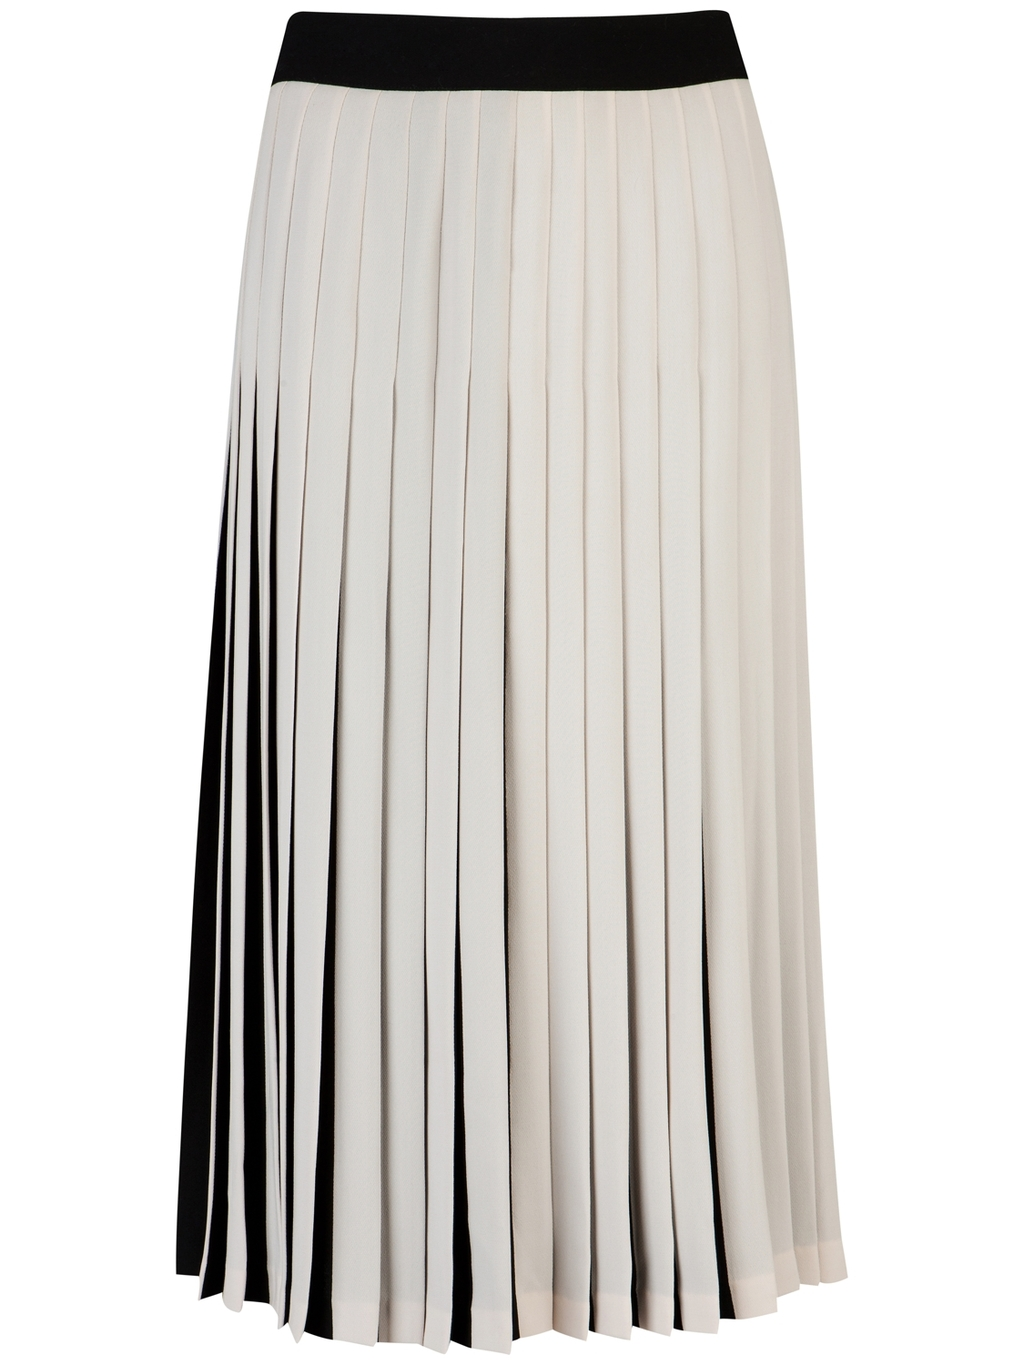 Baker: Popii Pleated Skirt, Black/Ombre (in white)